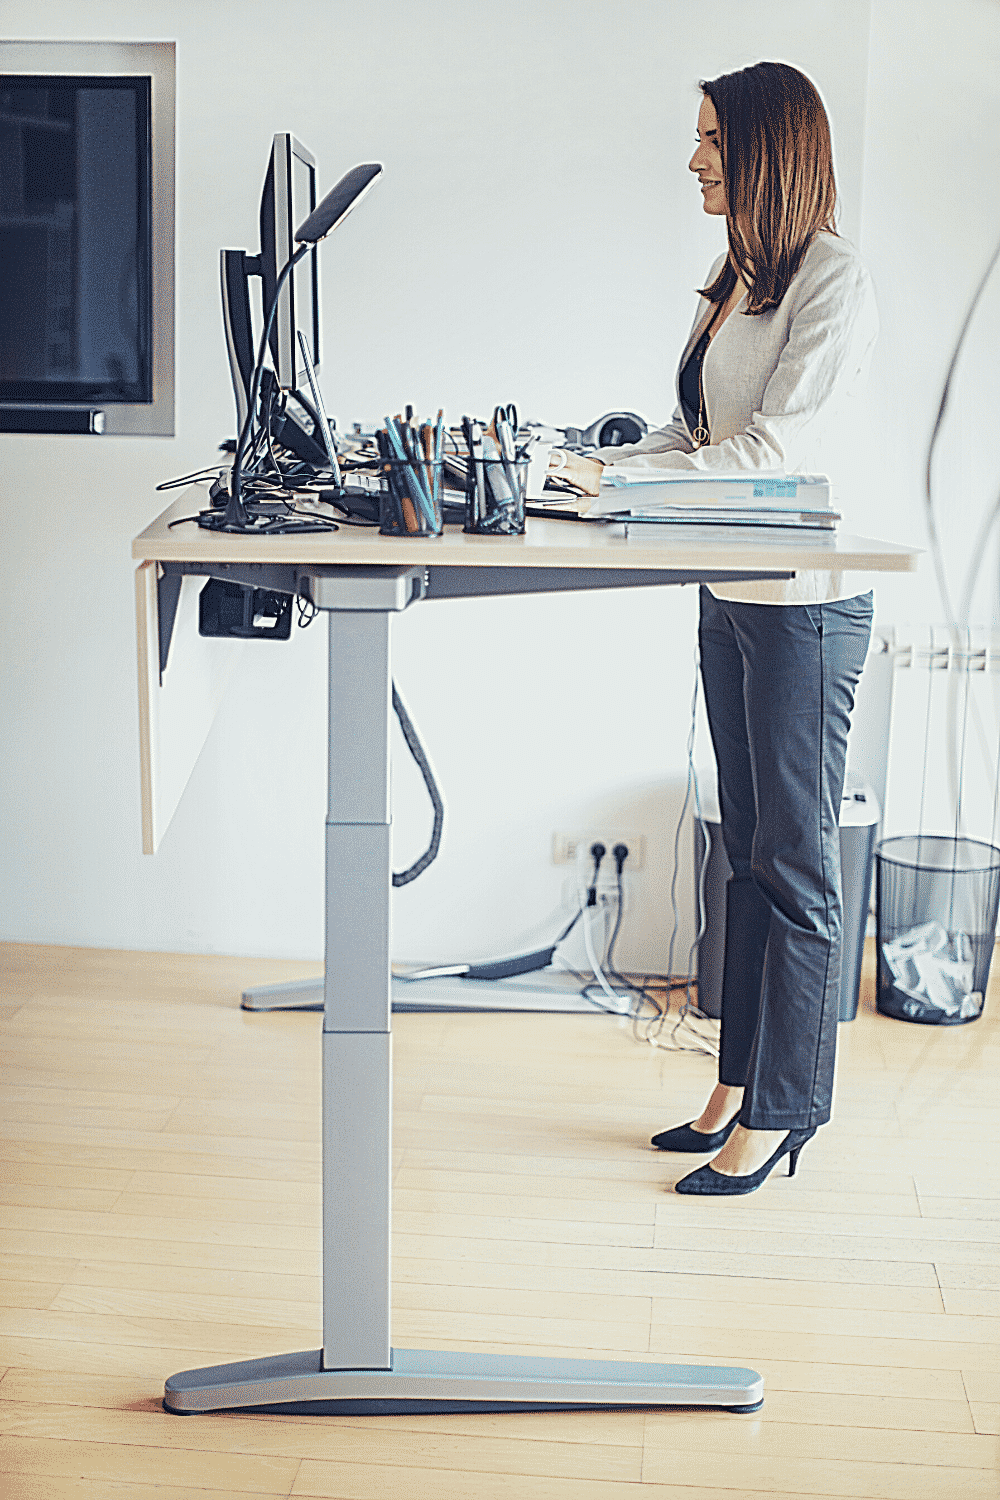 A woman stands in front of a computer at a standing desk